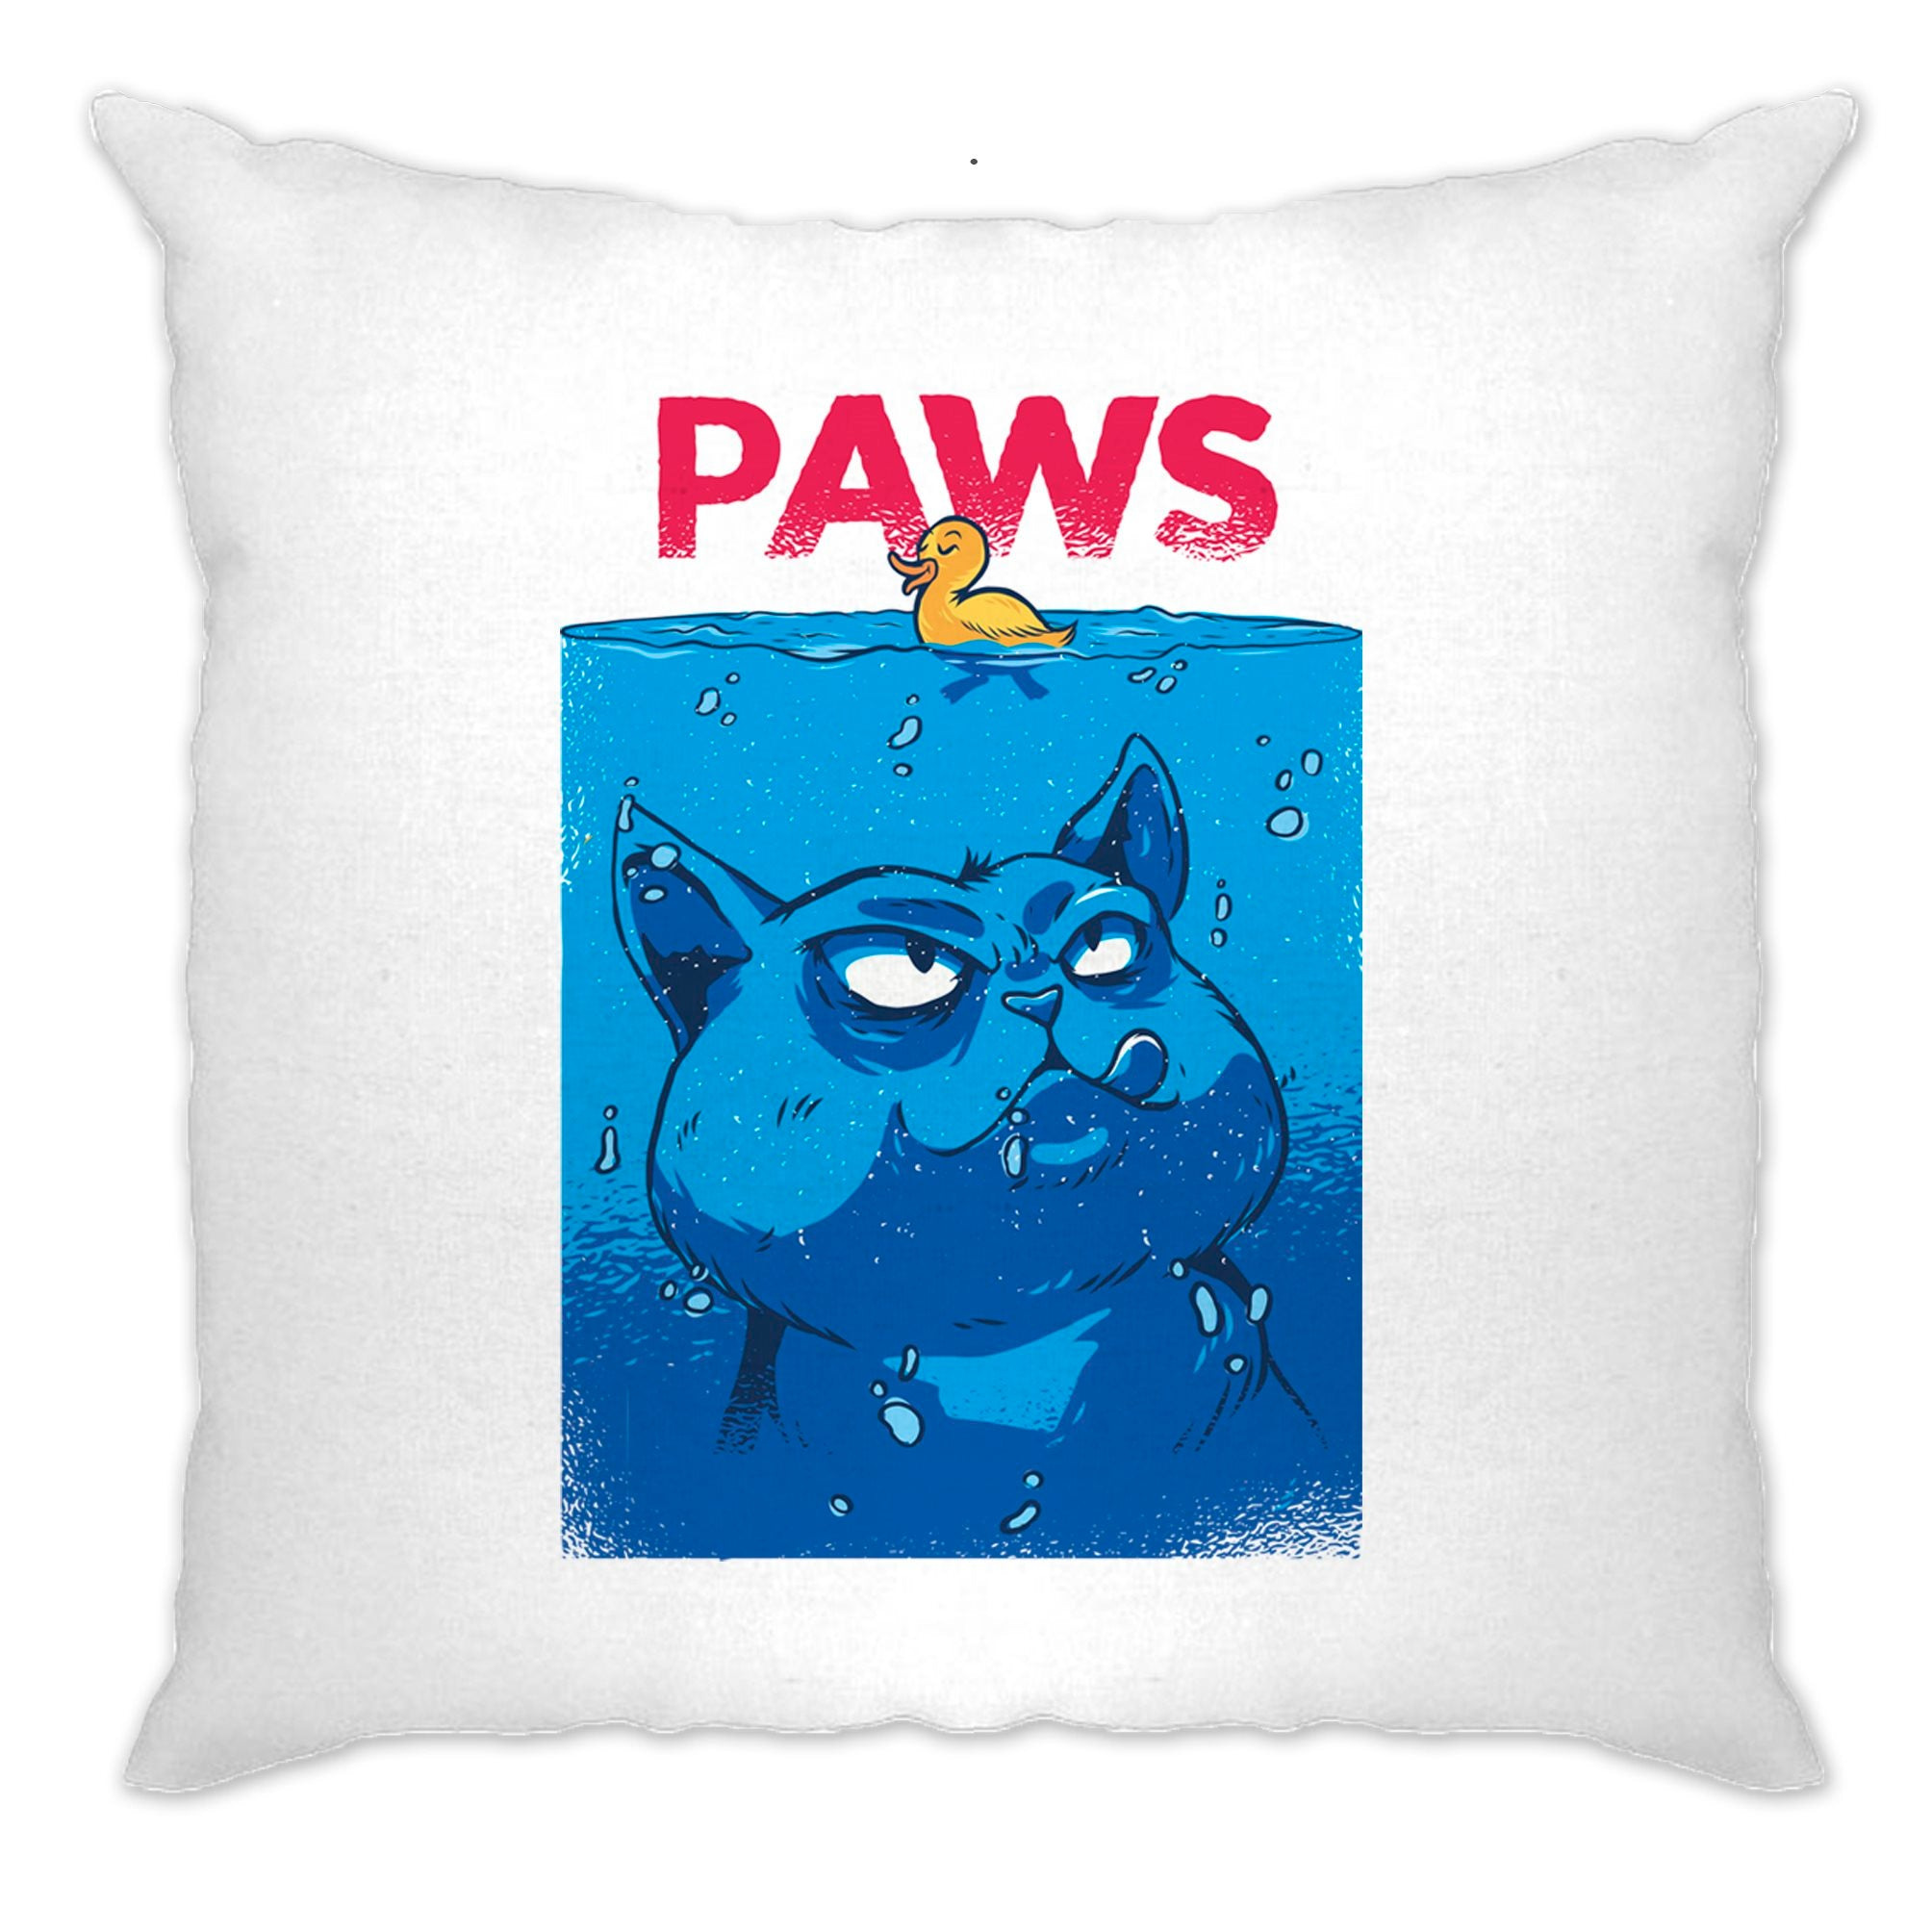 Funny Cat Cushion Cover Paws The Movie Jaws Parody